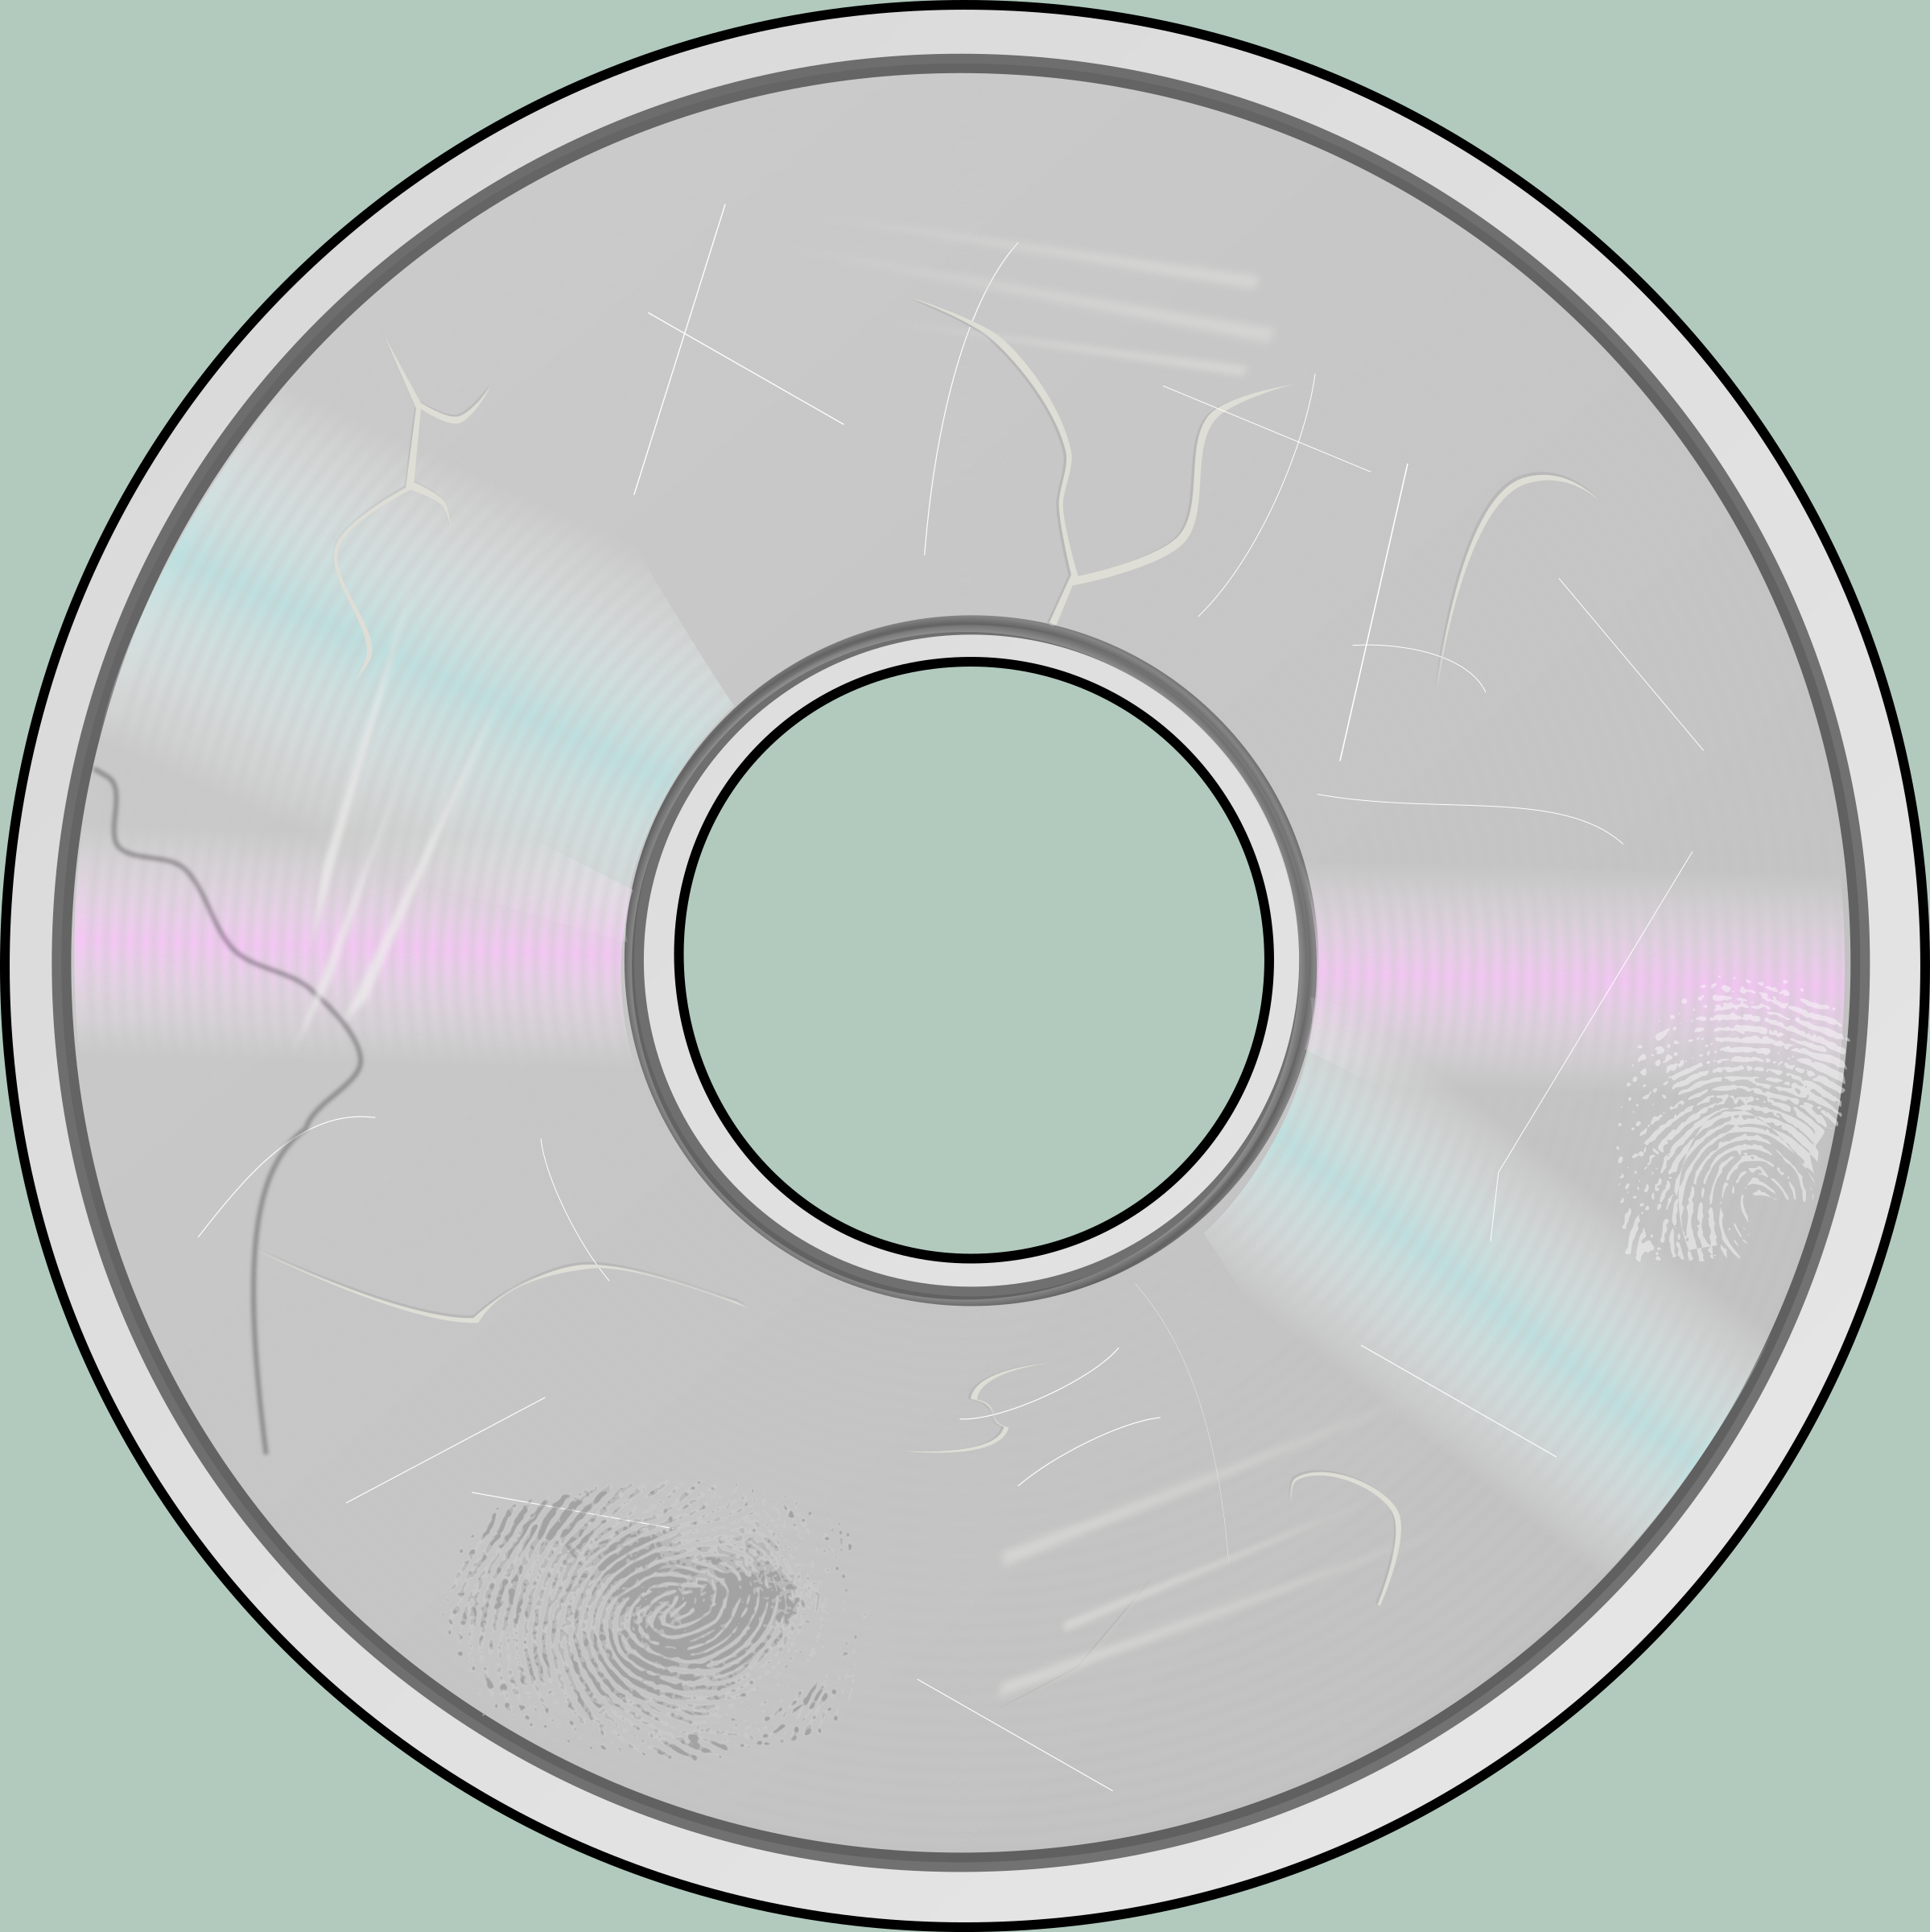 More Obviously Damaged Compact Disc by eady